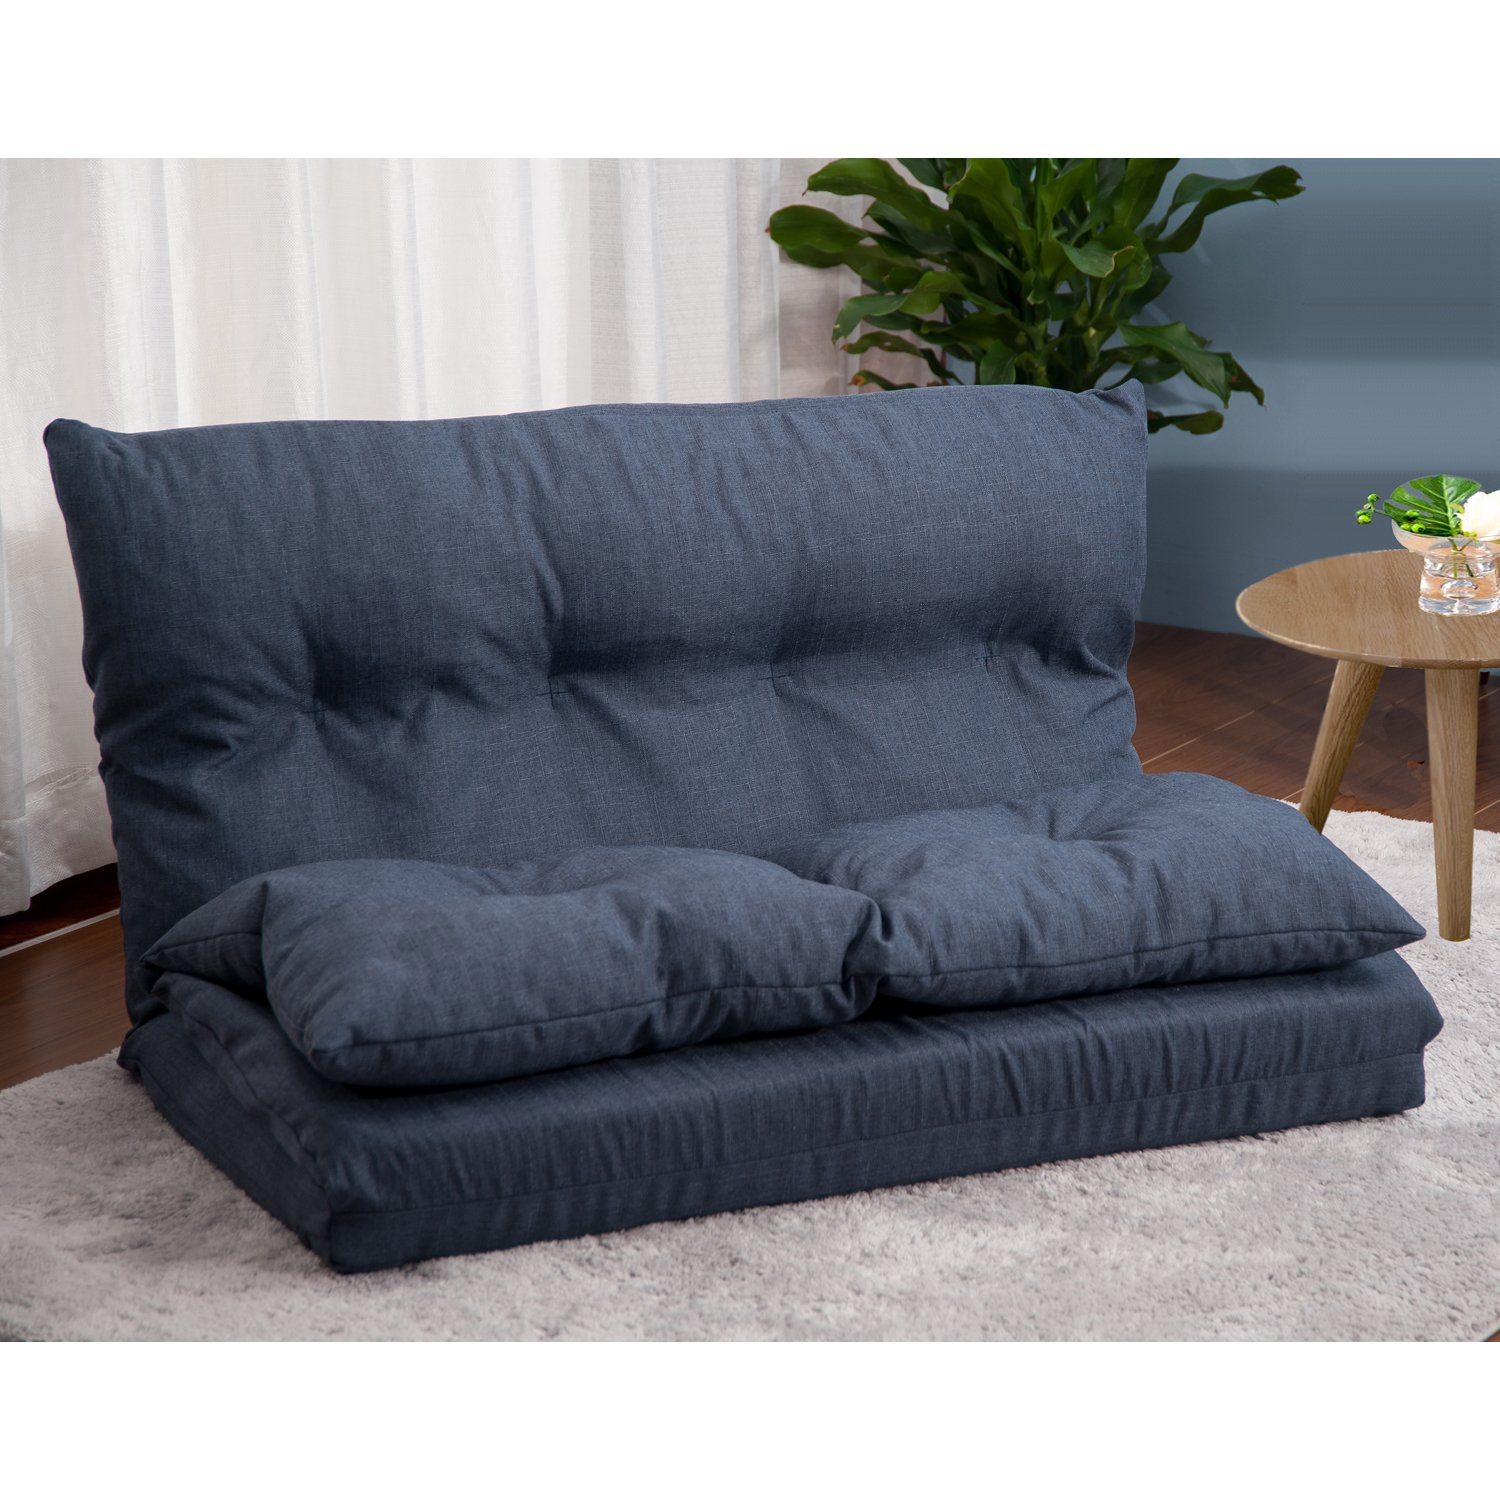 Merax Adjustable Fabric Folding Chaise Lounge Sofa Chair Floor Couch (Navy 1) by Merax